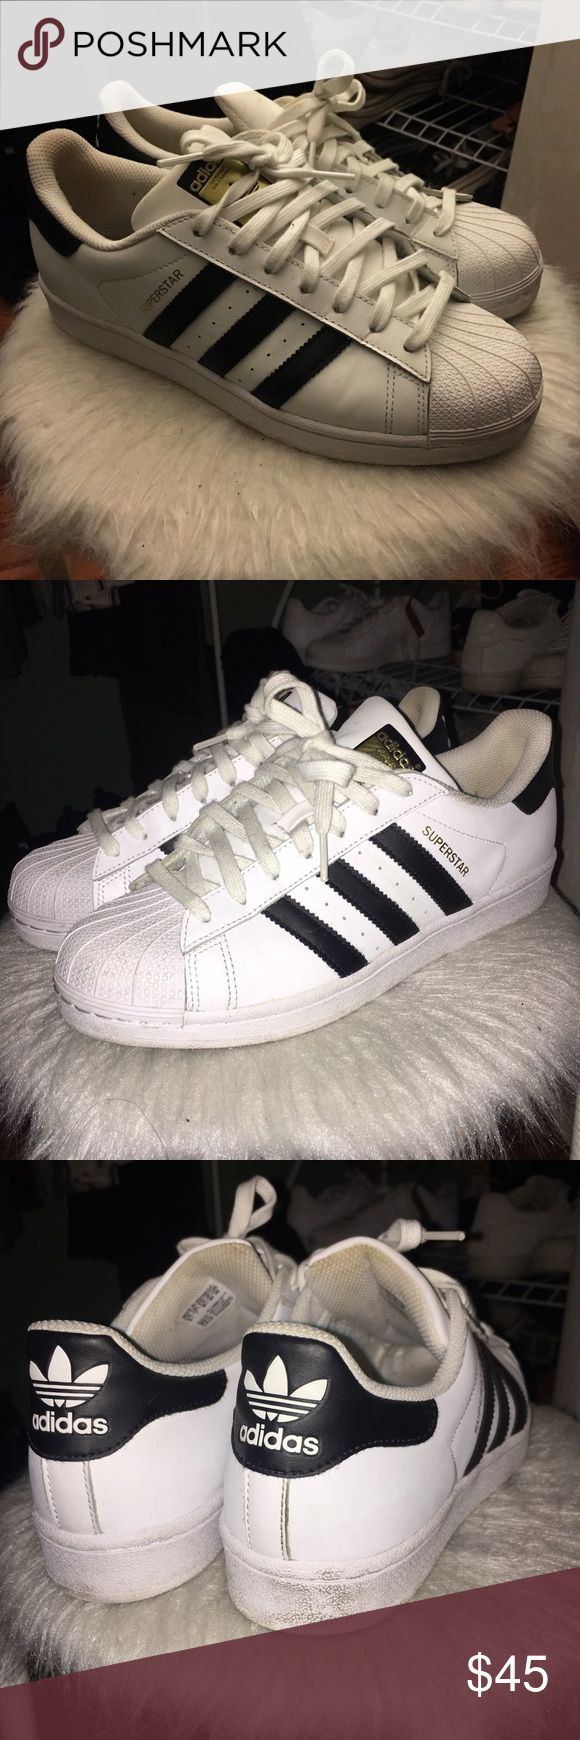 Adidas Superstar Originals Black and White Adidas Superstar Original shell toe sneakers! Gently used. Only wore about 3-4 times.  Men's 8.5 / Women's 9.5 (I'm a true W 10 and these are too snug on me)  Scuffs are shown in images and they're easily removable. Just needs a little scrub :) still a lot of life left in these!  Price negotiable. No lowballs please. Adidas Shoes Sneakers